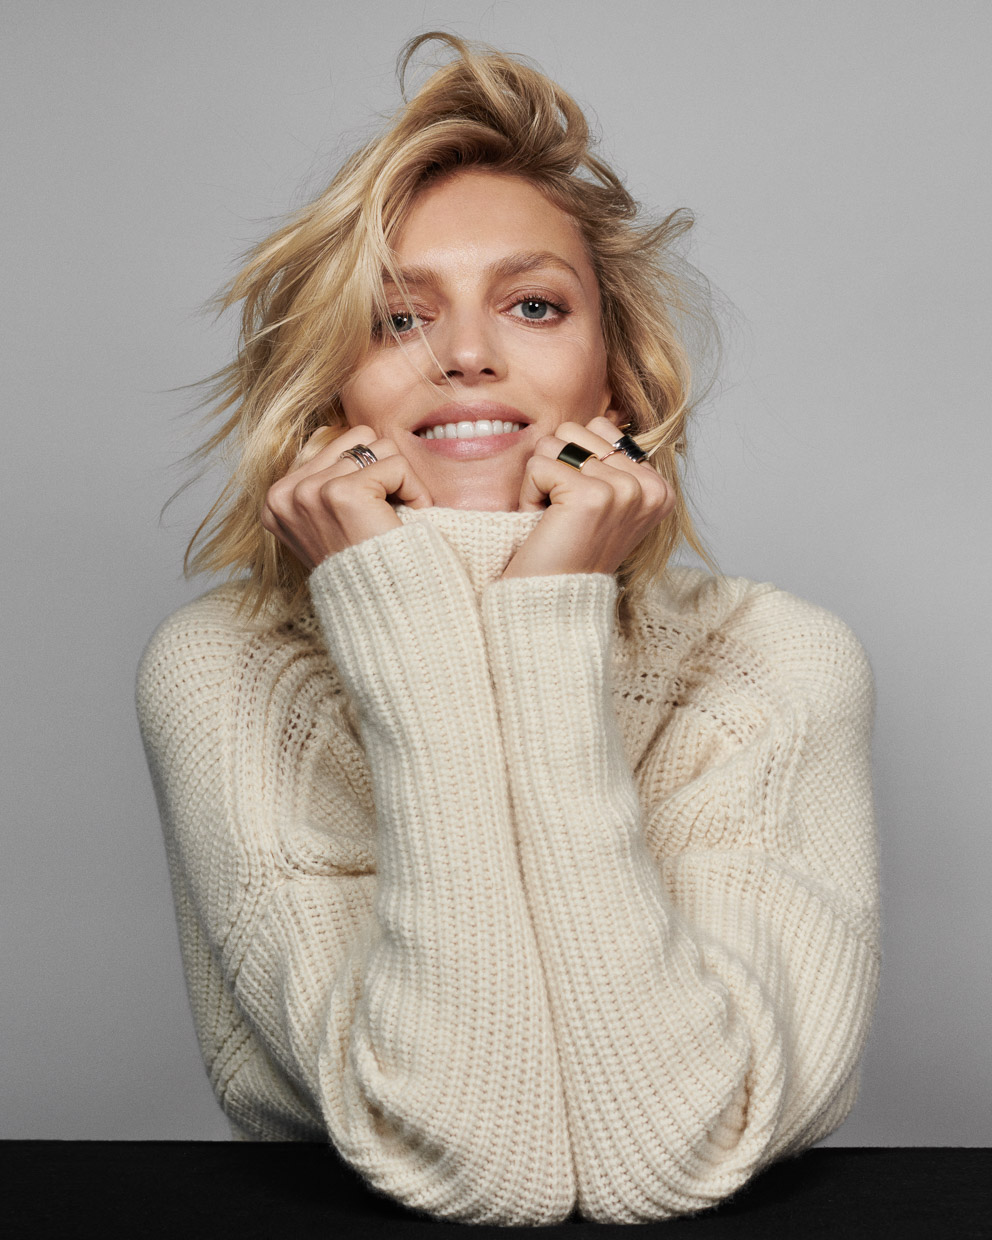 Anja Rubik. The Times.